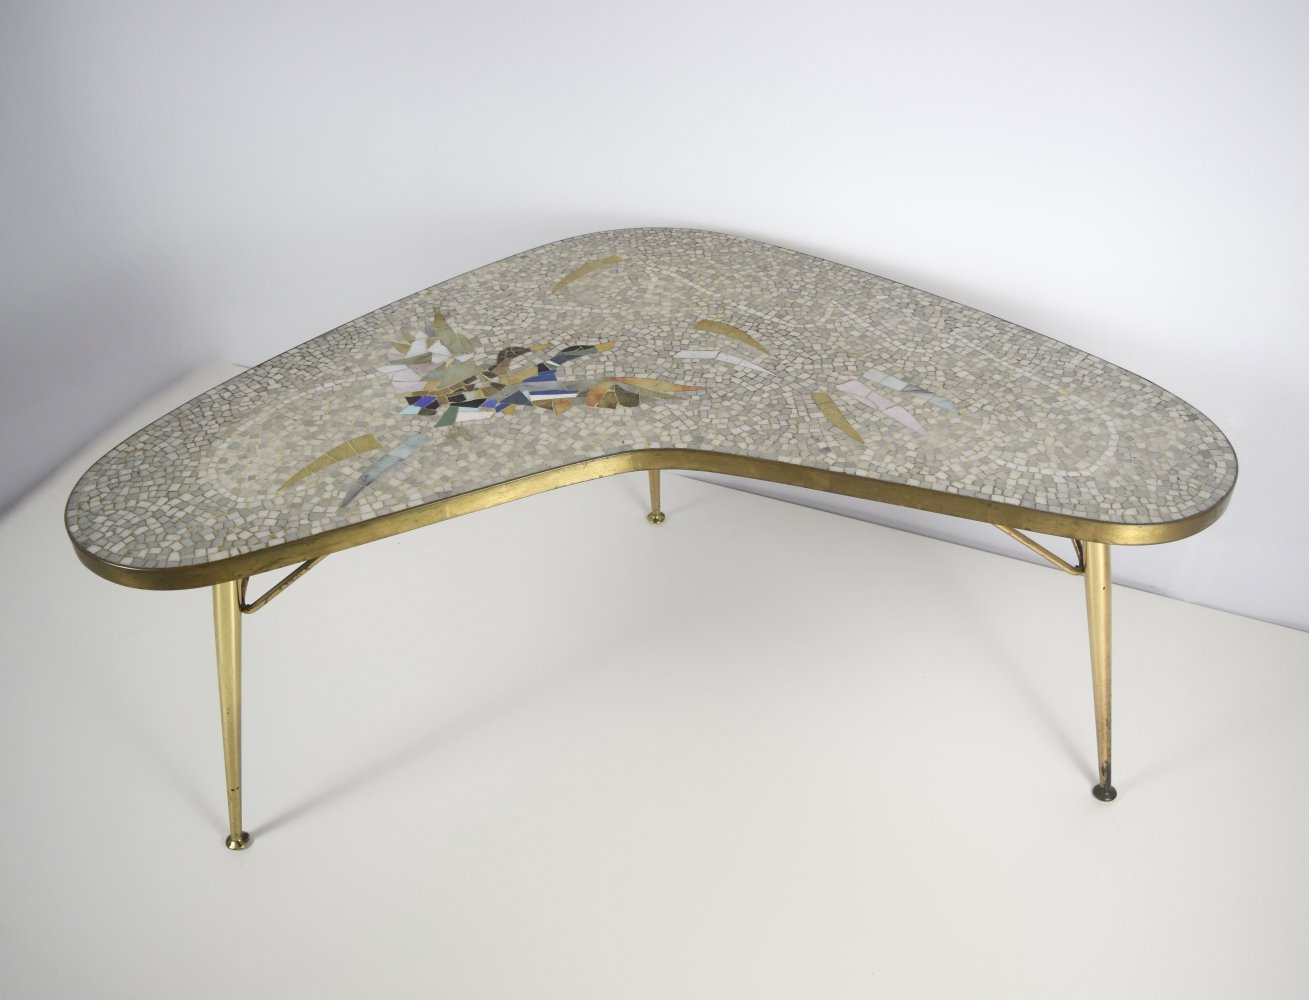 Mosaic & Brass Coffee Table by Berthold Muller-Oerlinghausen, Germany 1950